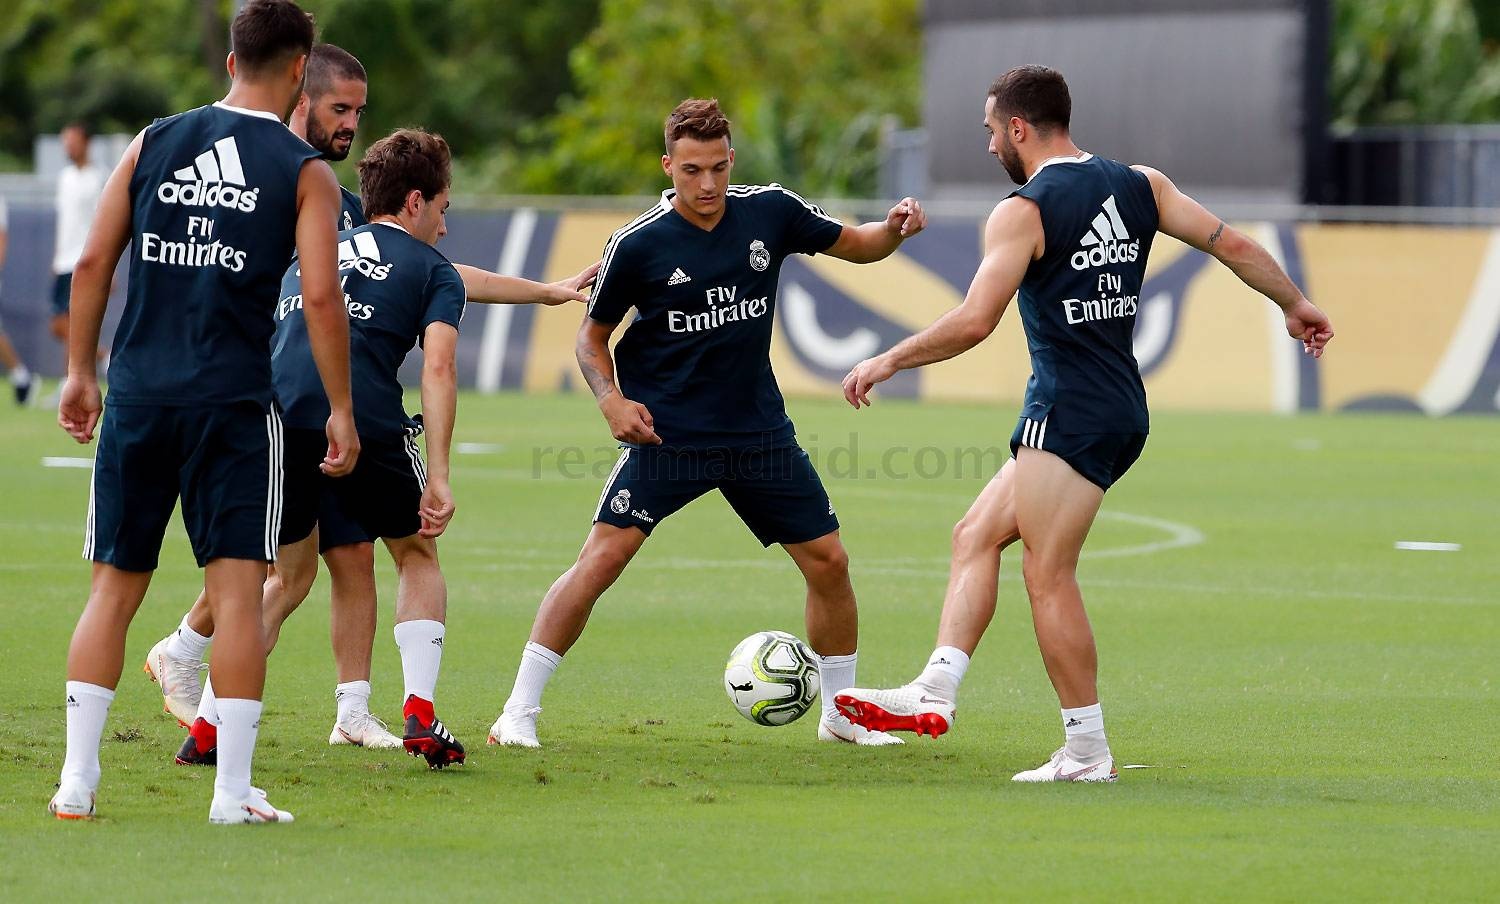 Real Madrid - Entrenamiento del Real Madrid en FIU - 29-07-2018